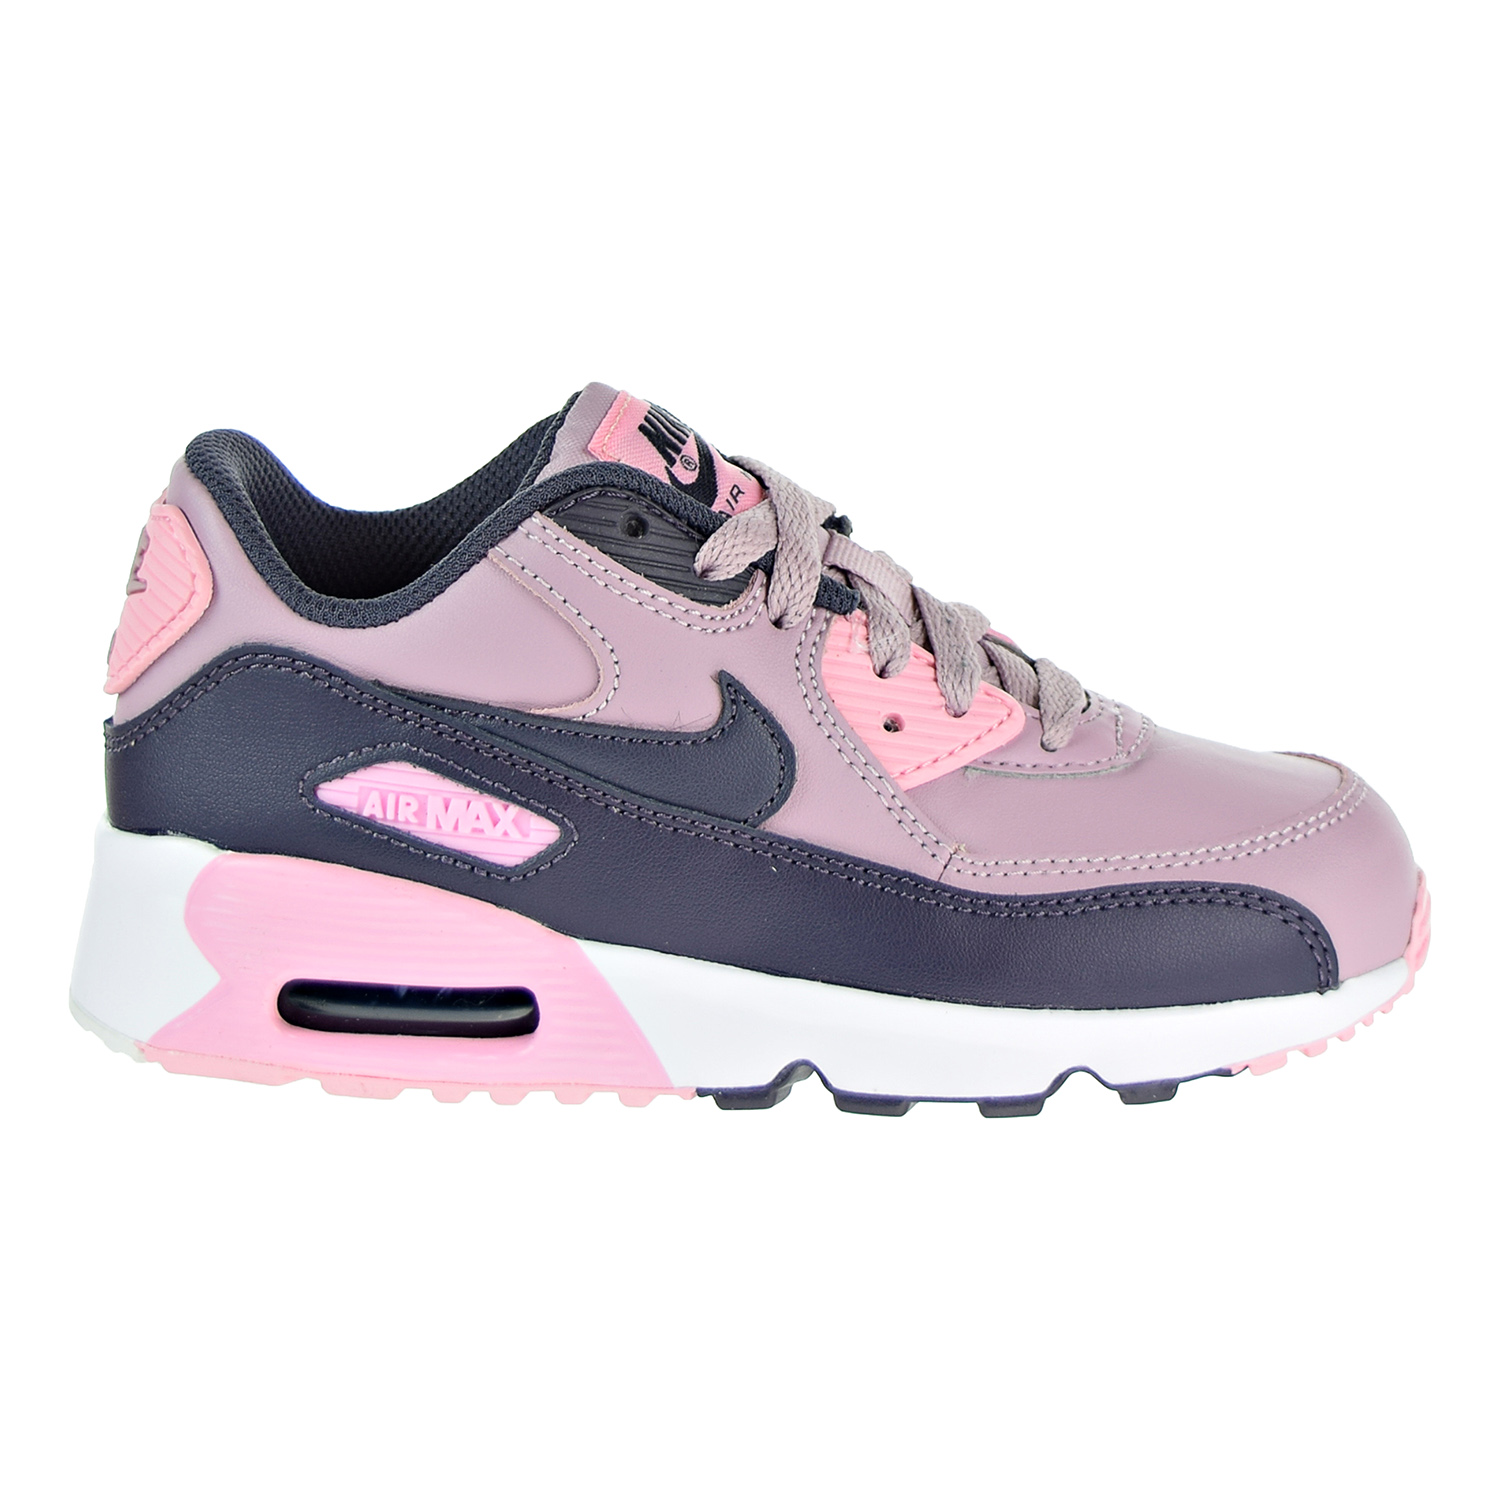 Details about Nike Air Max 90 LTR Big Kids Pink 833377 602